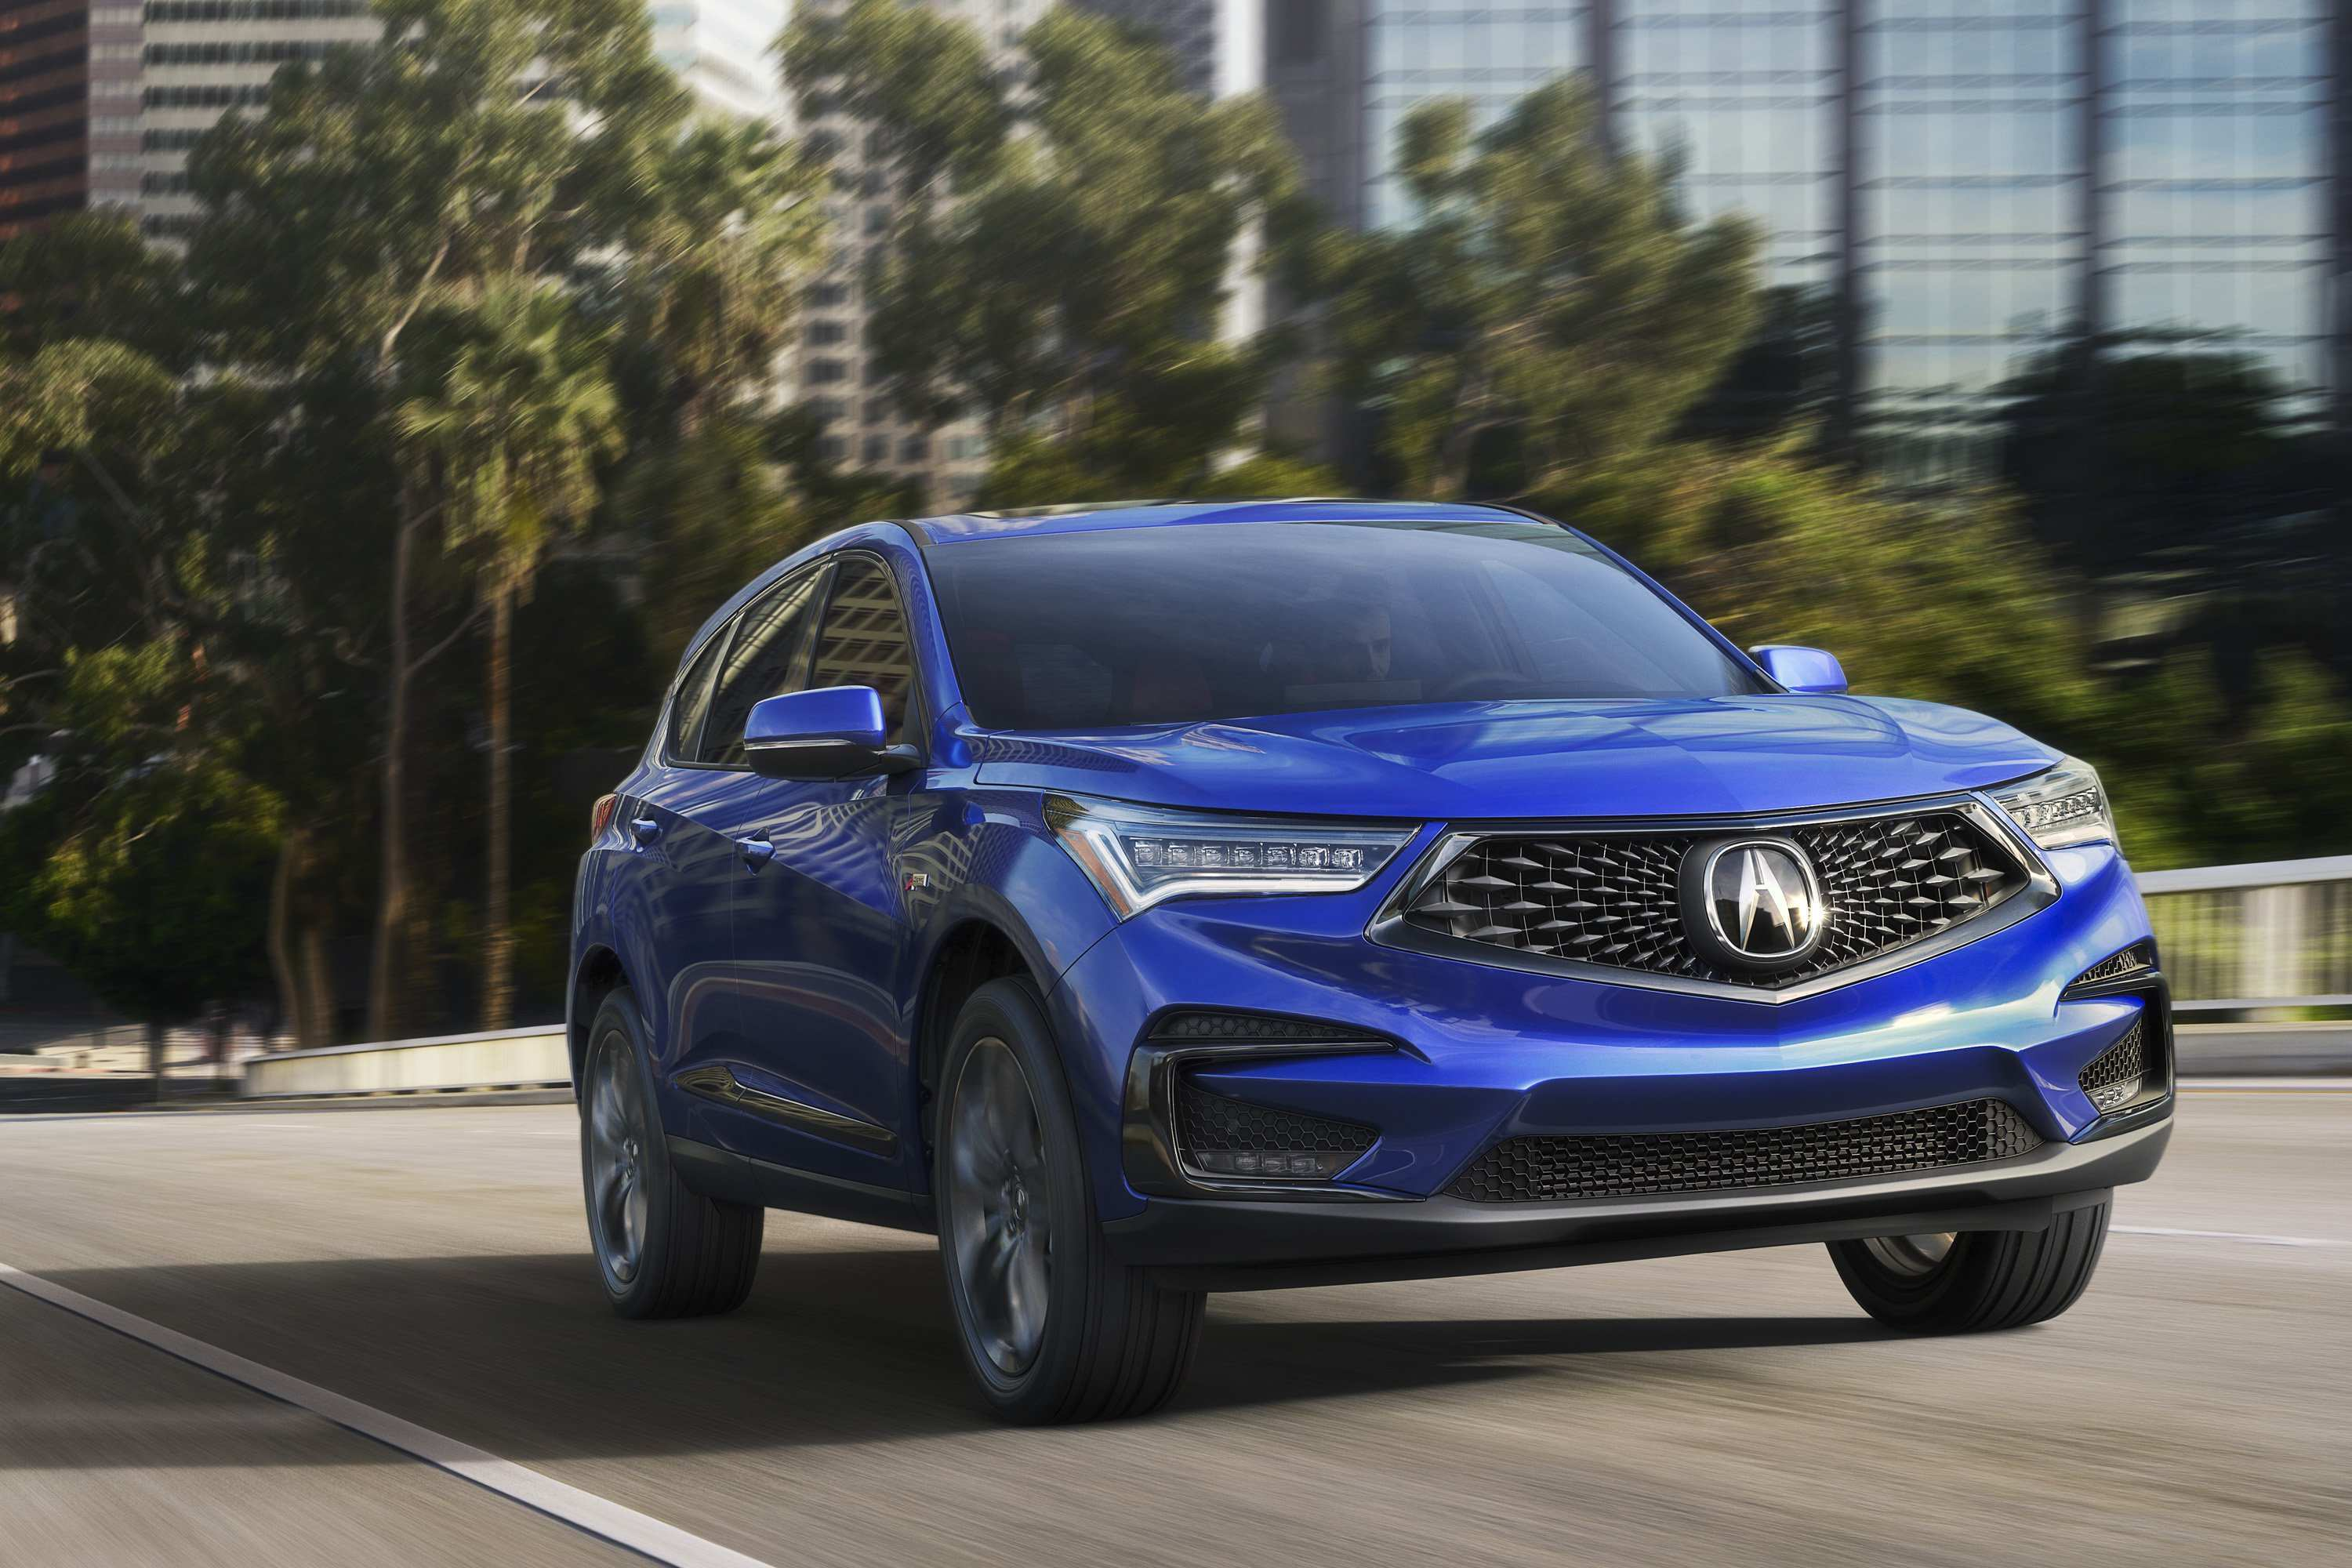 61 All New New Acura Rdx 2019 First Drive Release Date And Specs Spesification with New Acura Rdx 2019 First Drive Release Date And Specs